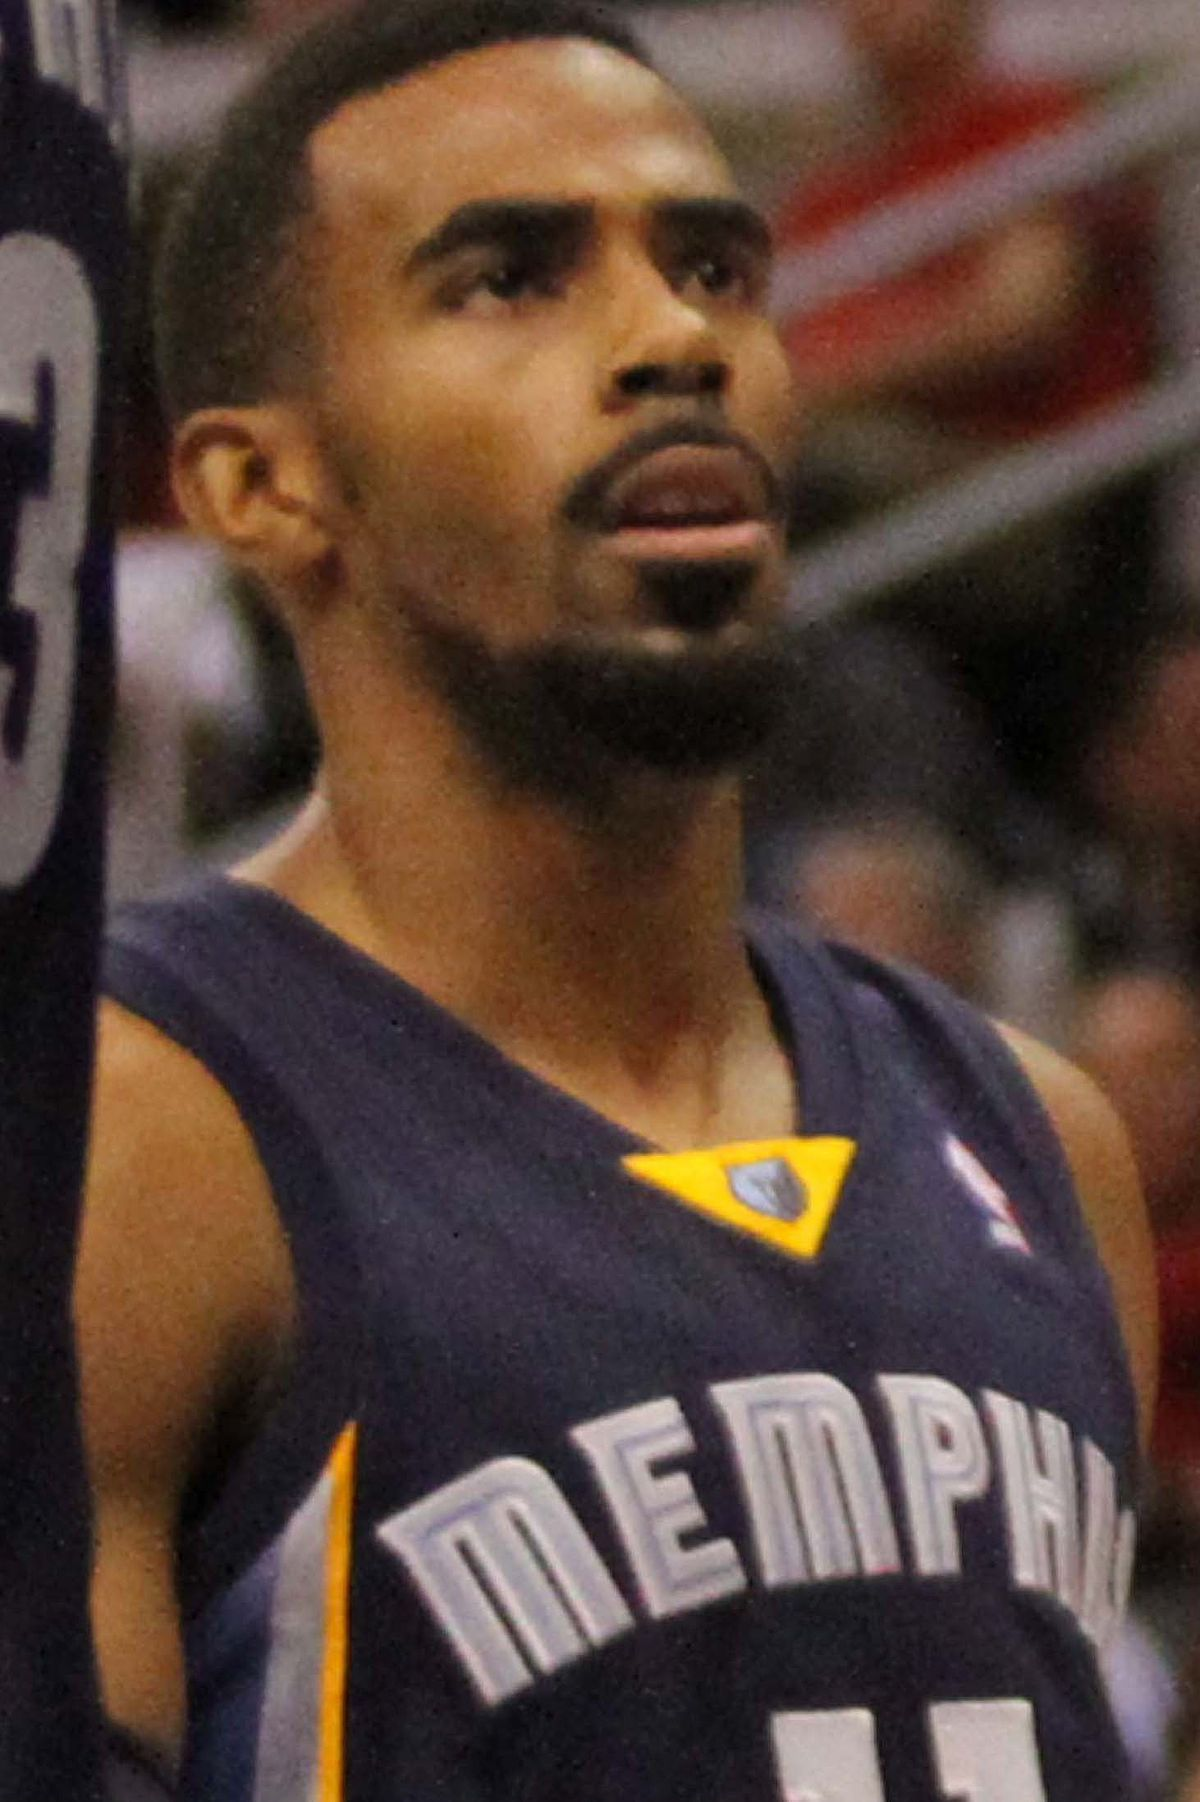 Mike Conley Jr